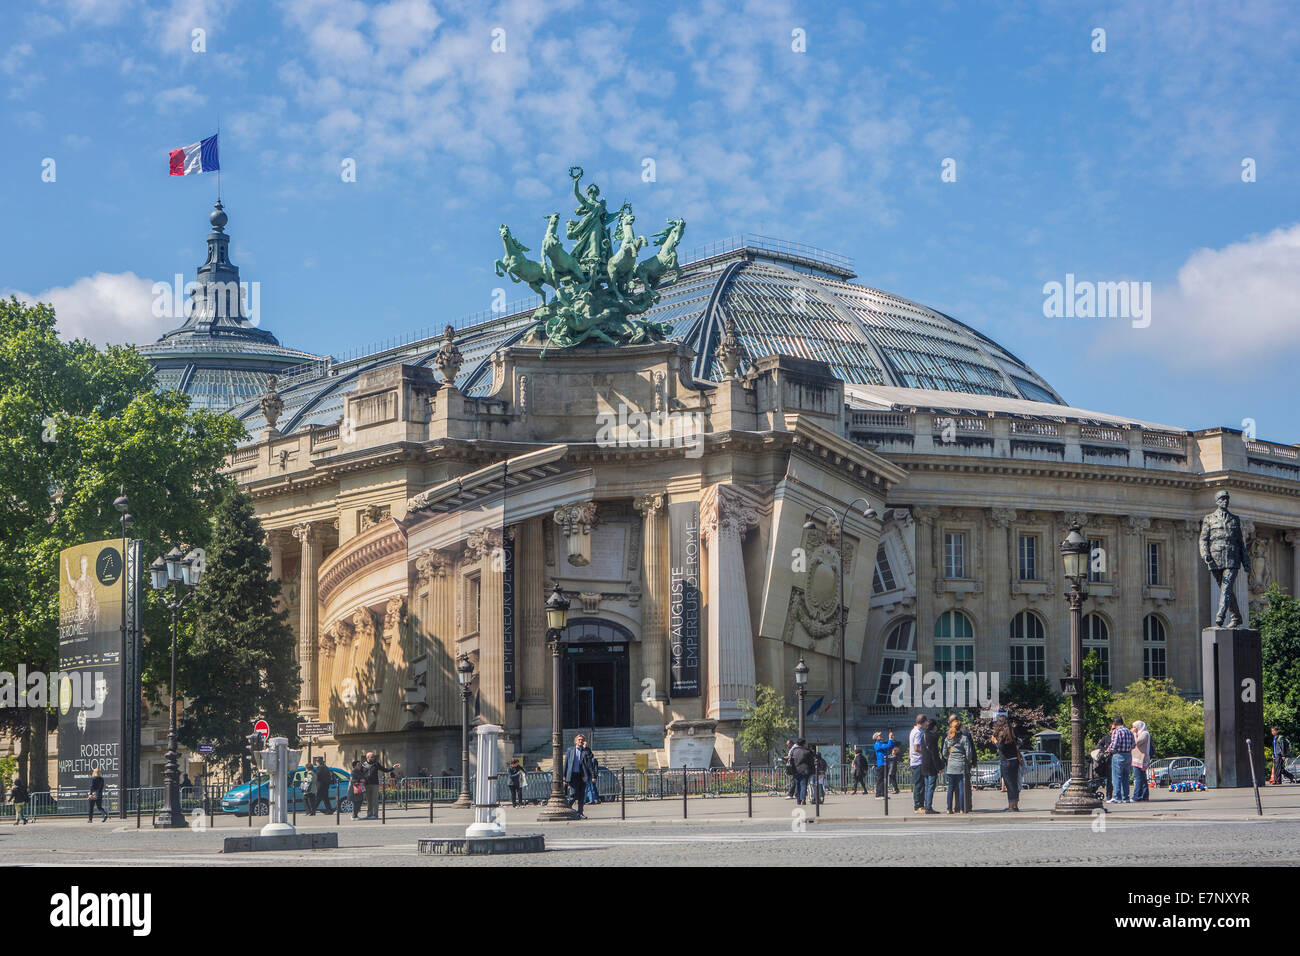 City entrance france grand palais paris architecture art stock photo royalty free image - Exposition paris grand palais ...